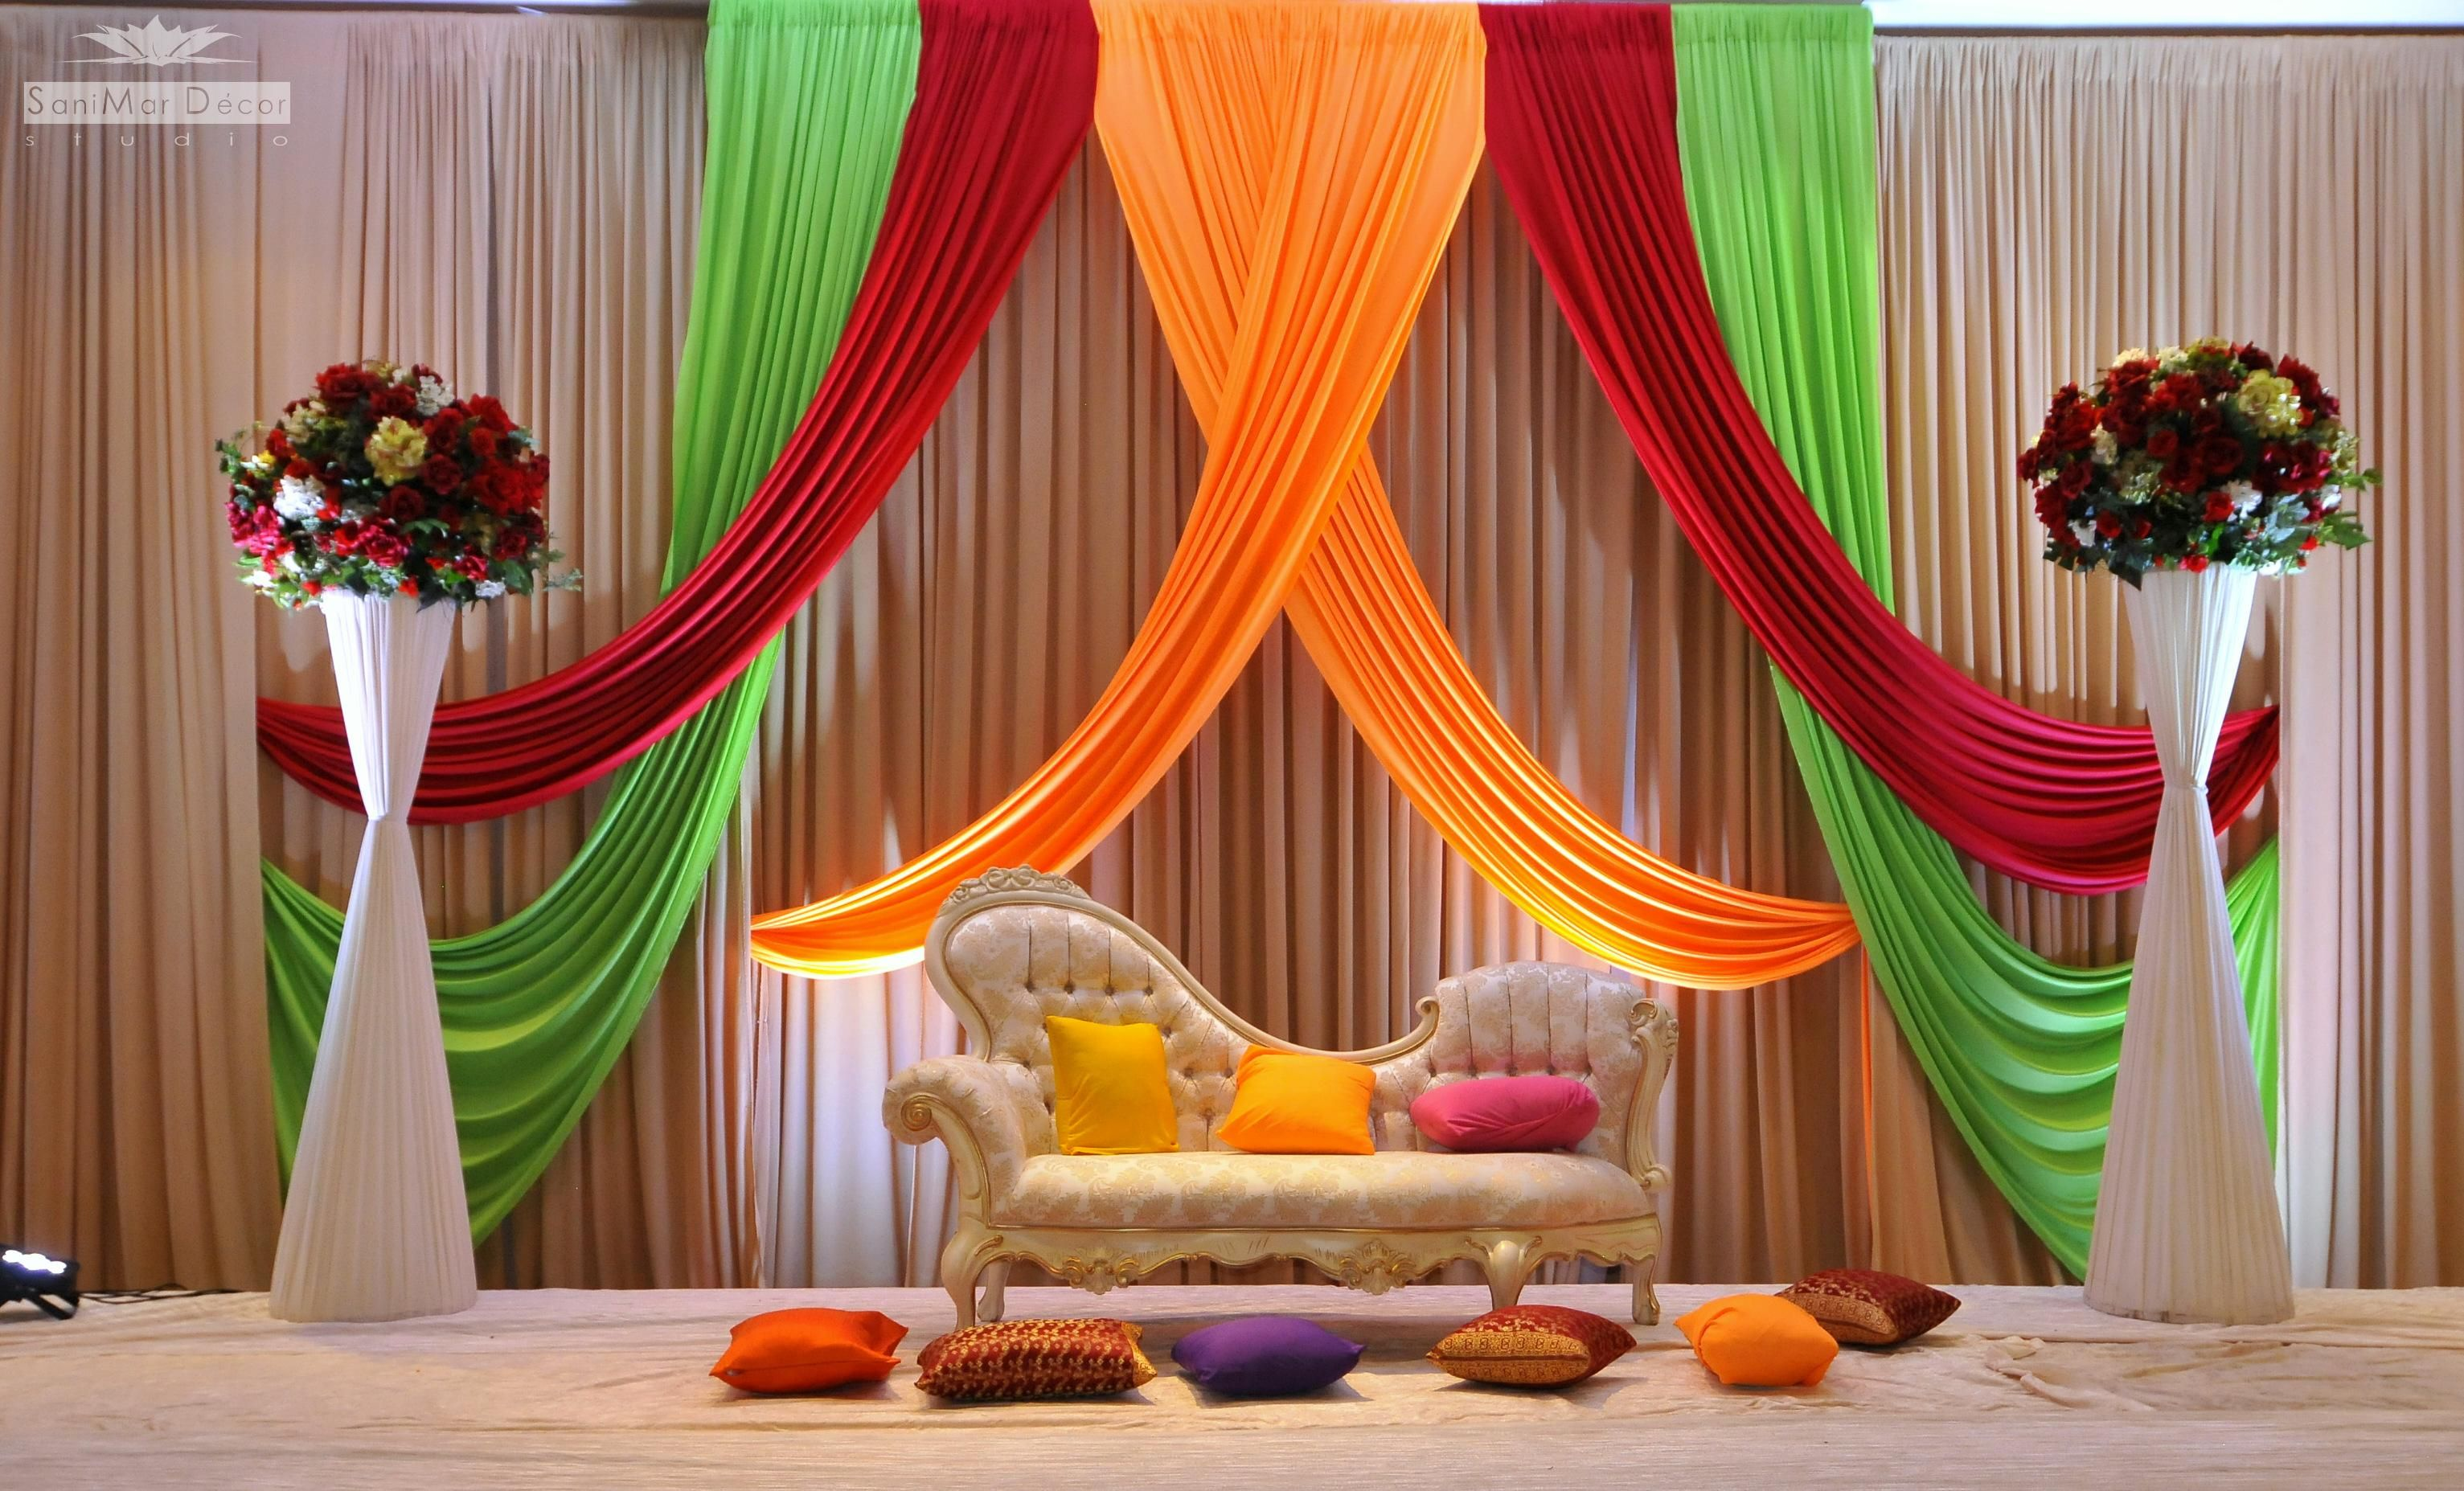 Wedding stage decoration wedding decorations natural for Simple home decor ideas indian